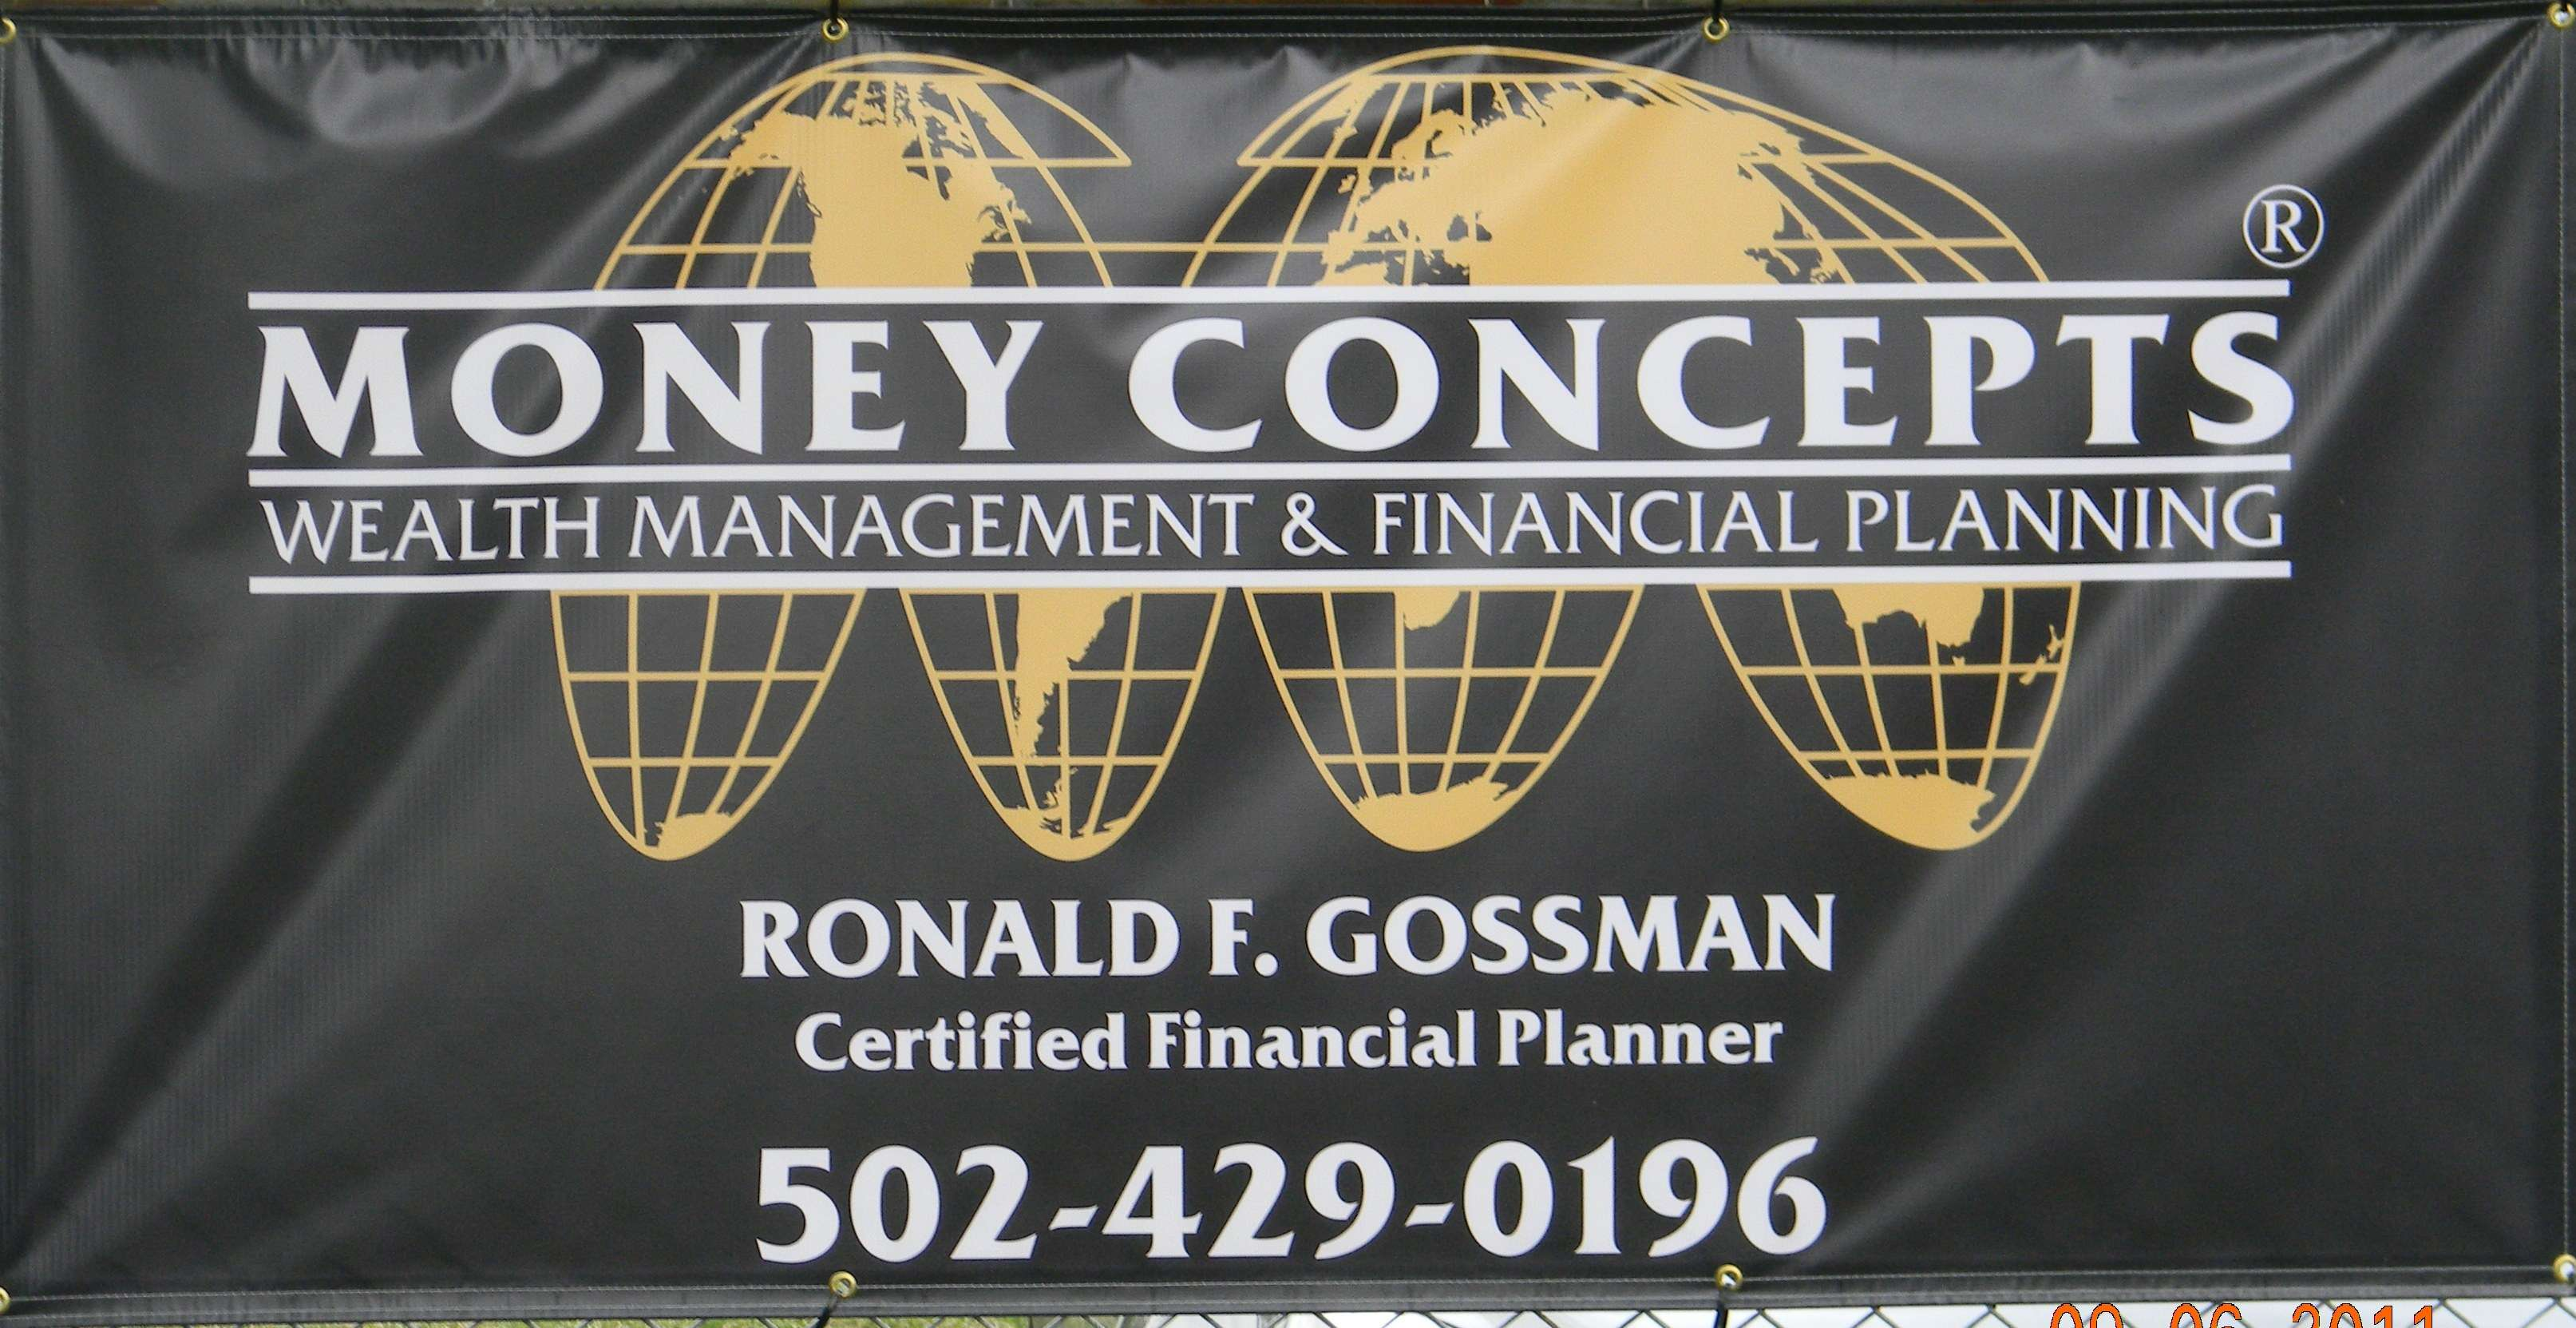 Money Concepts sponsor